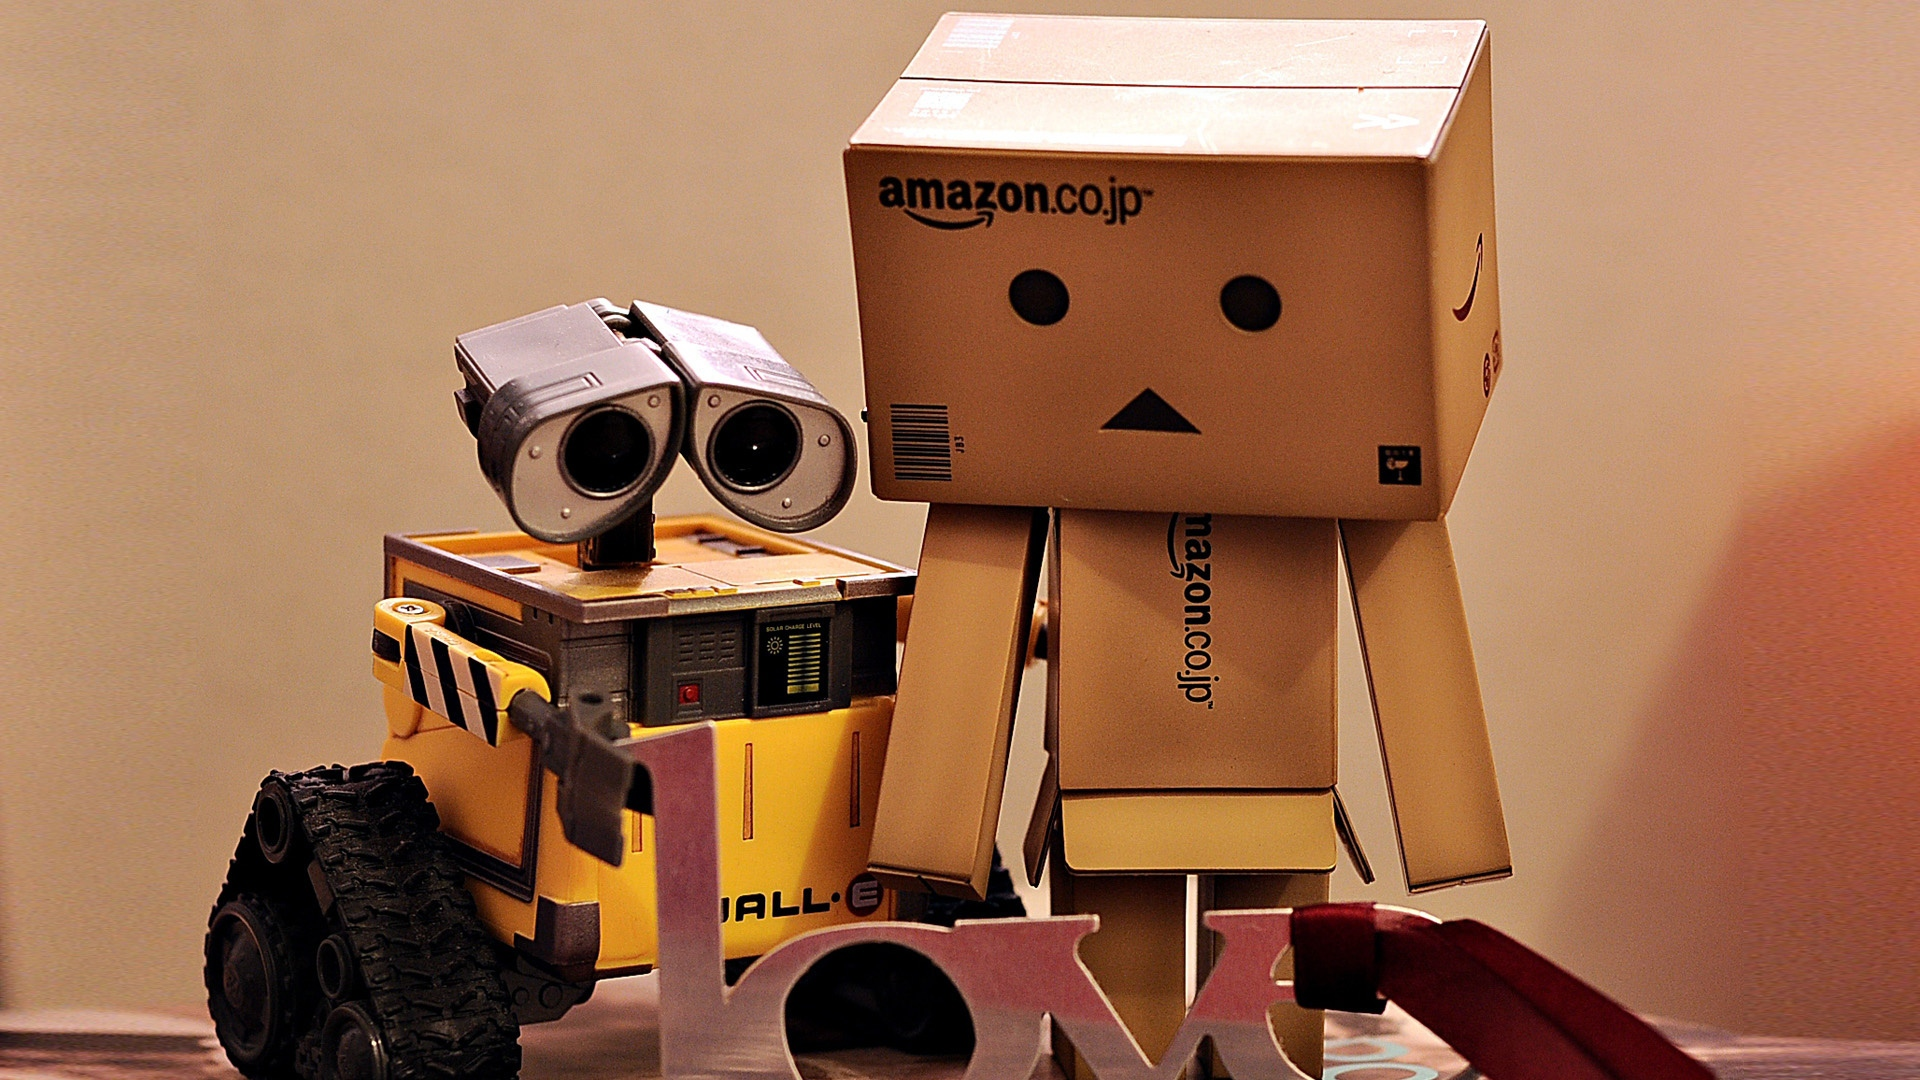 download wallpaper 1920x1080 danboard, wall-e, boxes, robots, couple